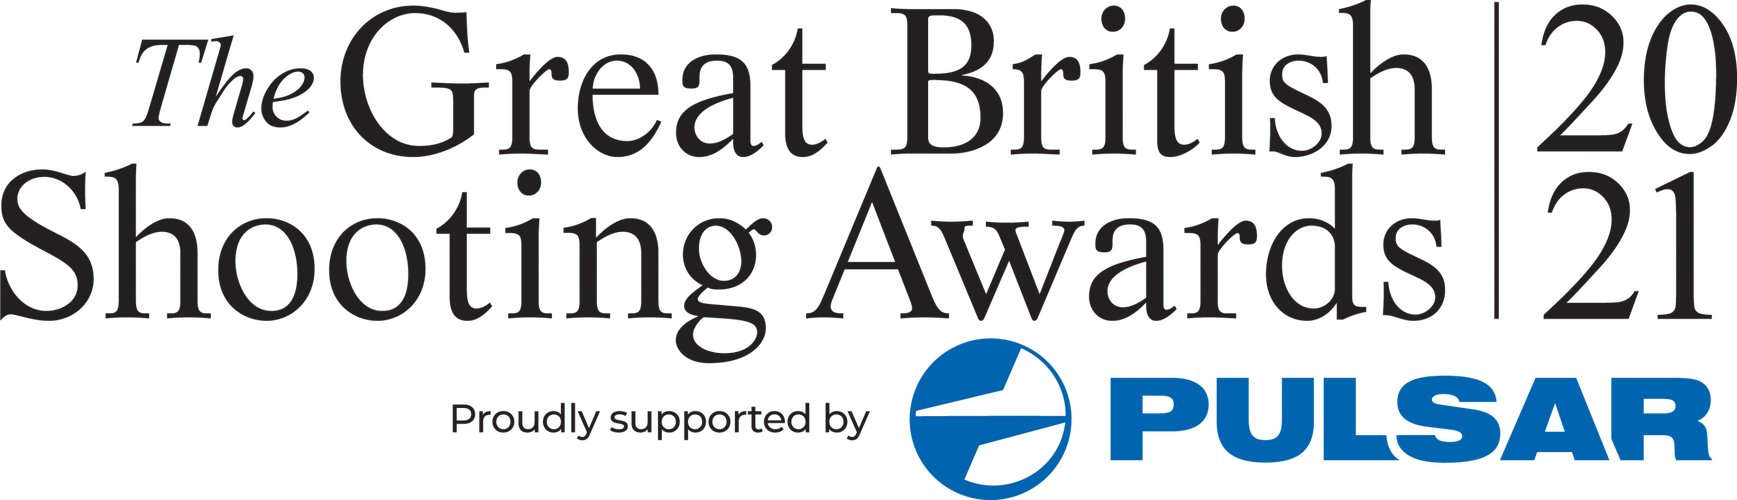 The Great British Shooting Awards 2021